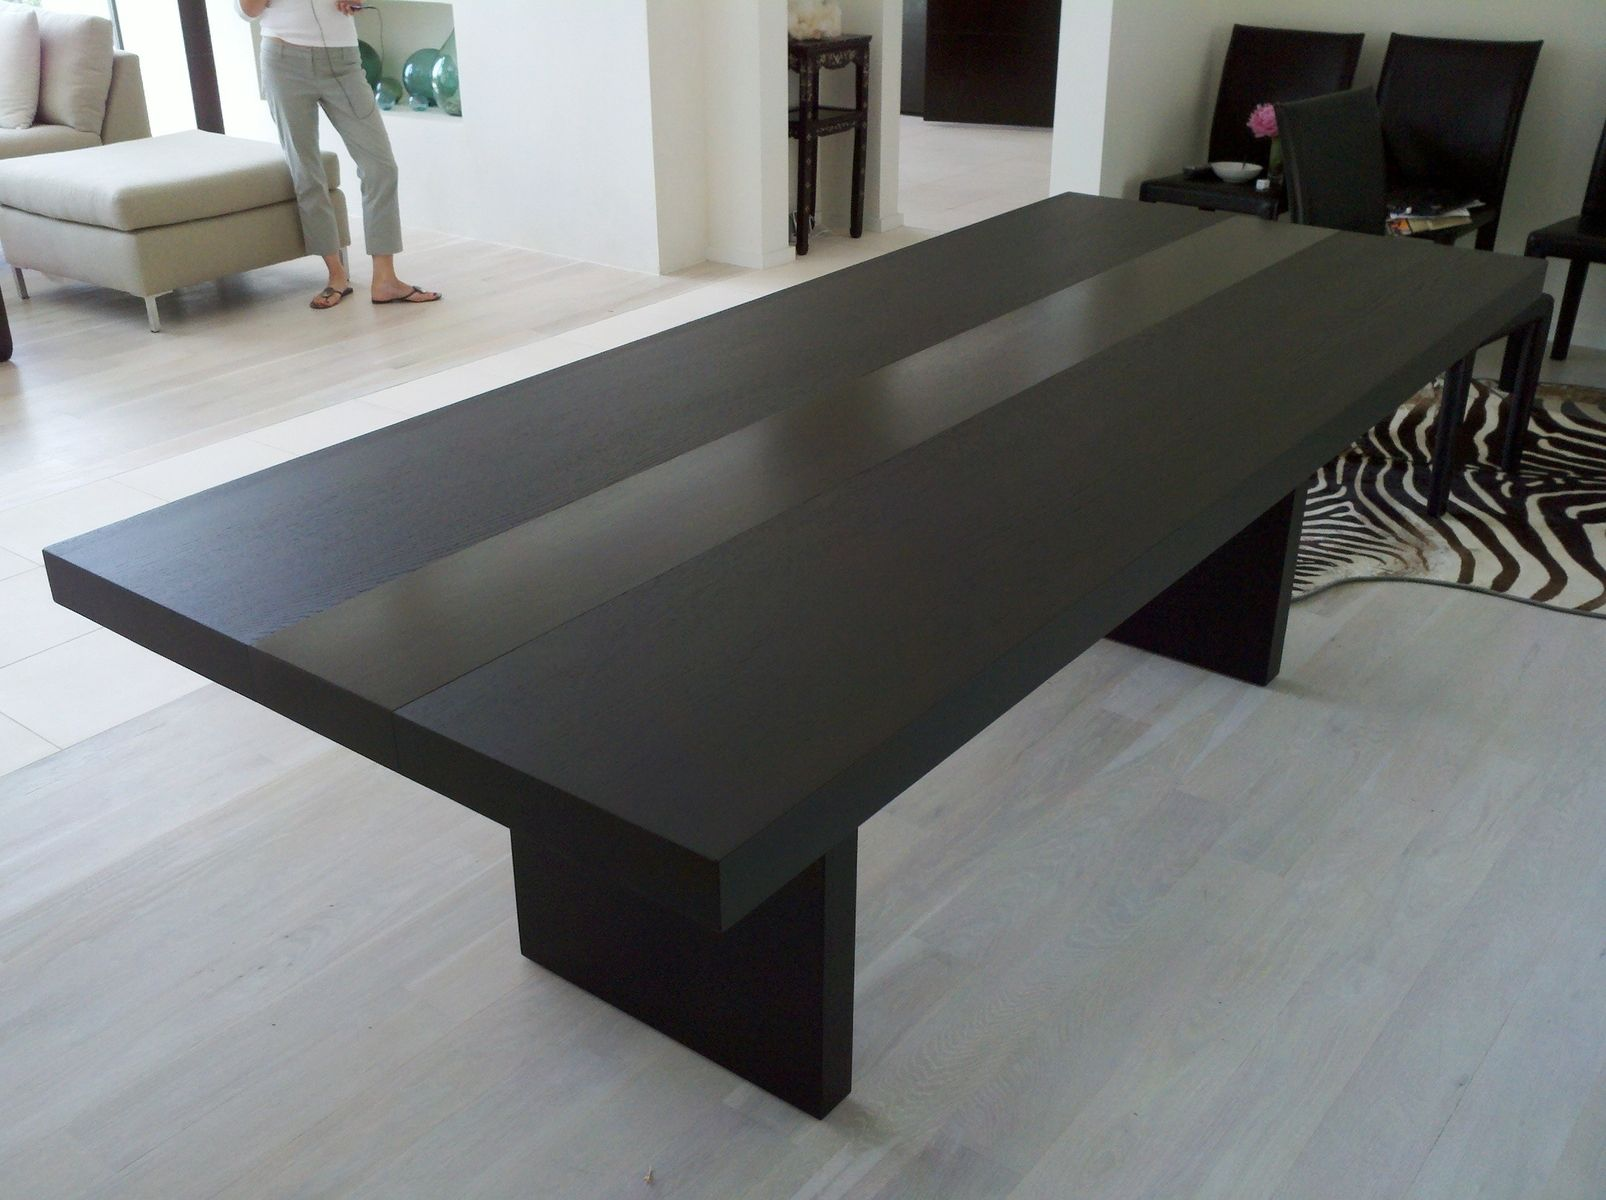 Handmade modern dining table by bedre woodworking custommade